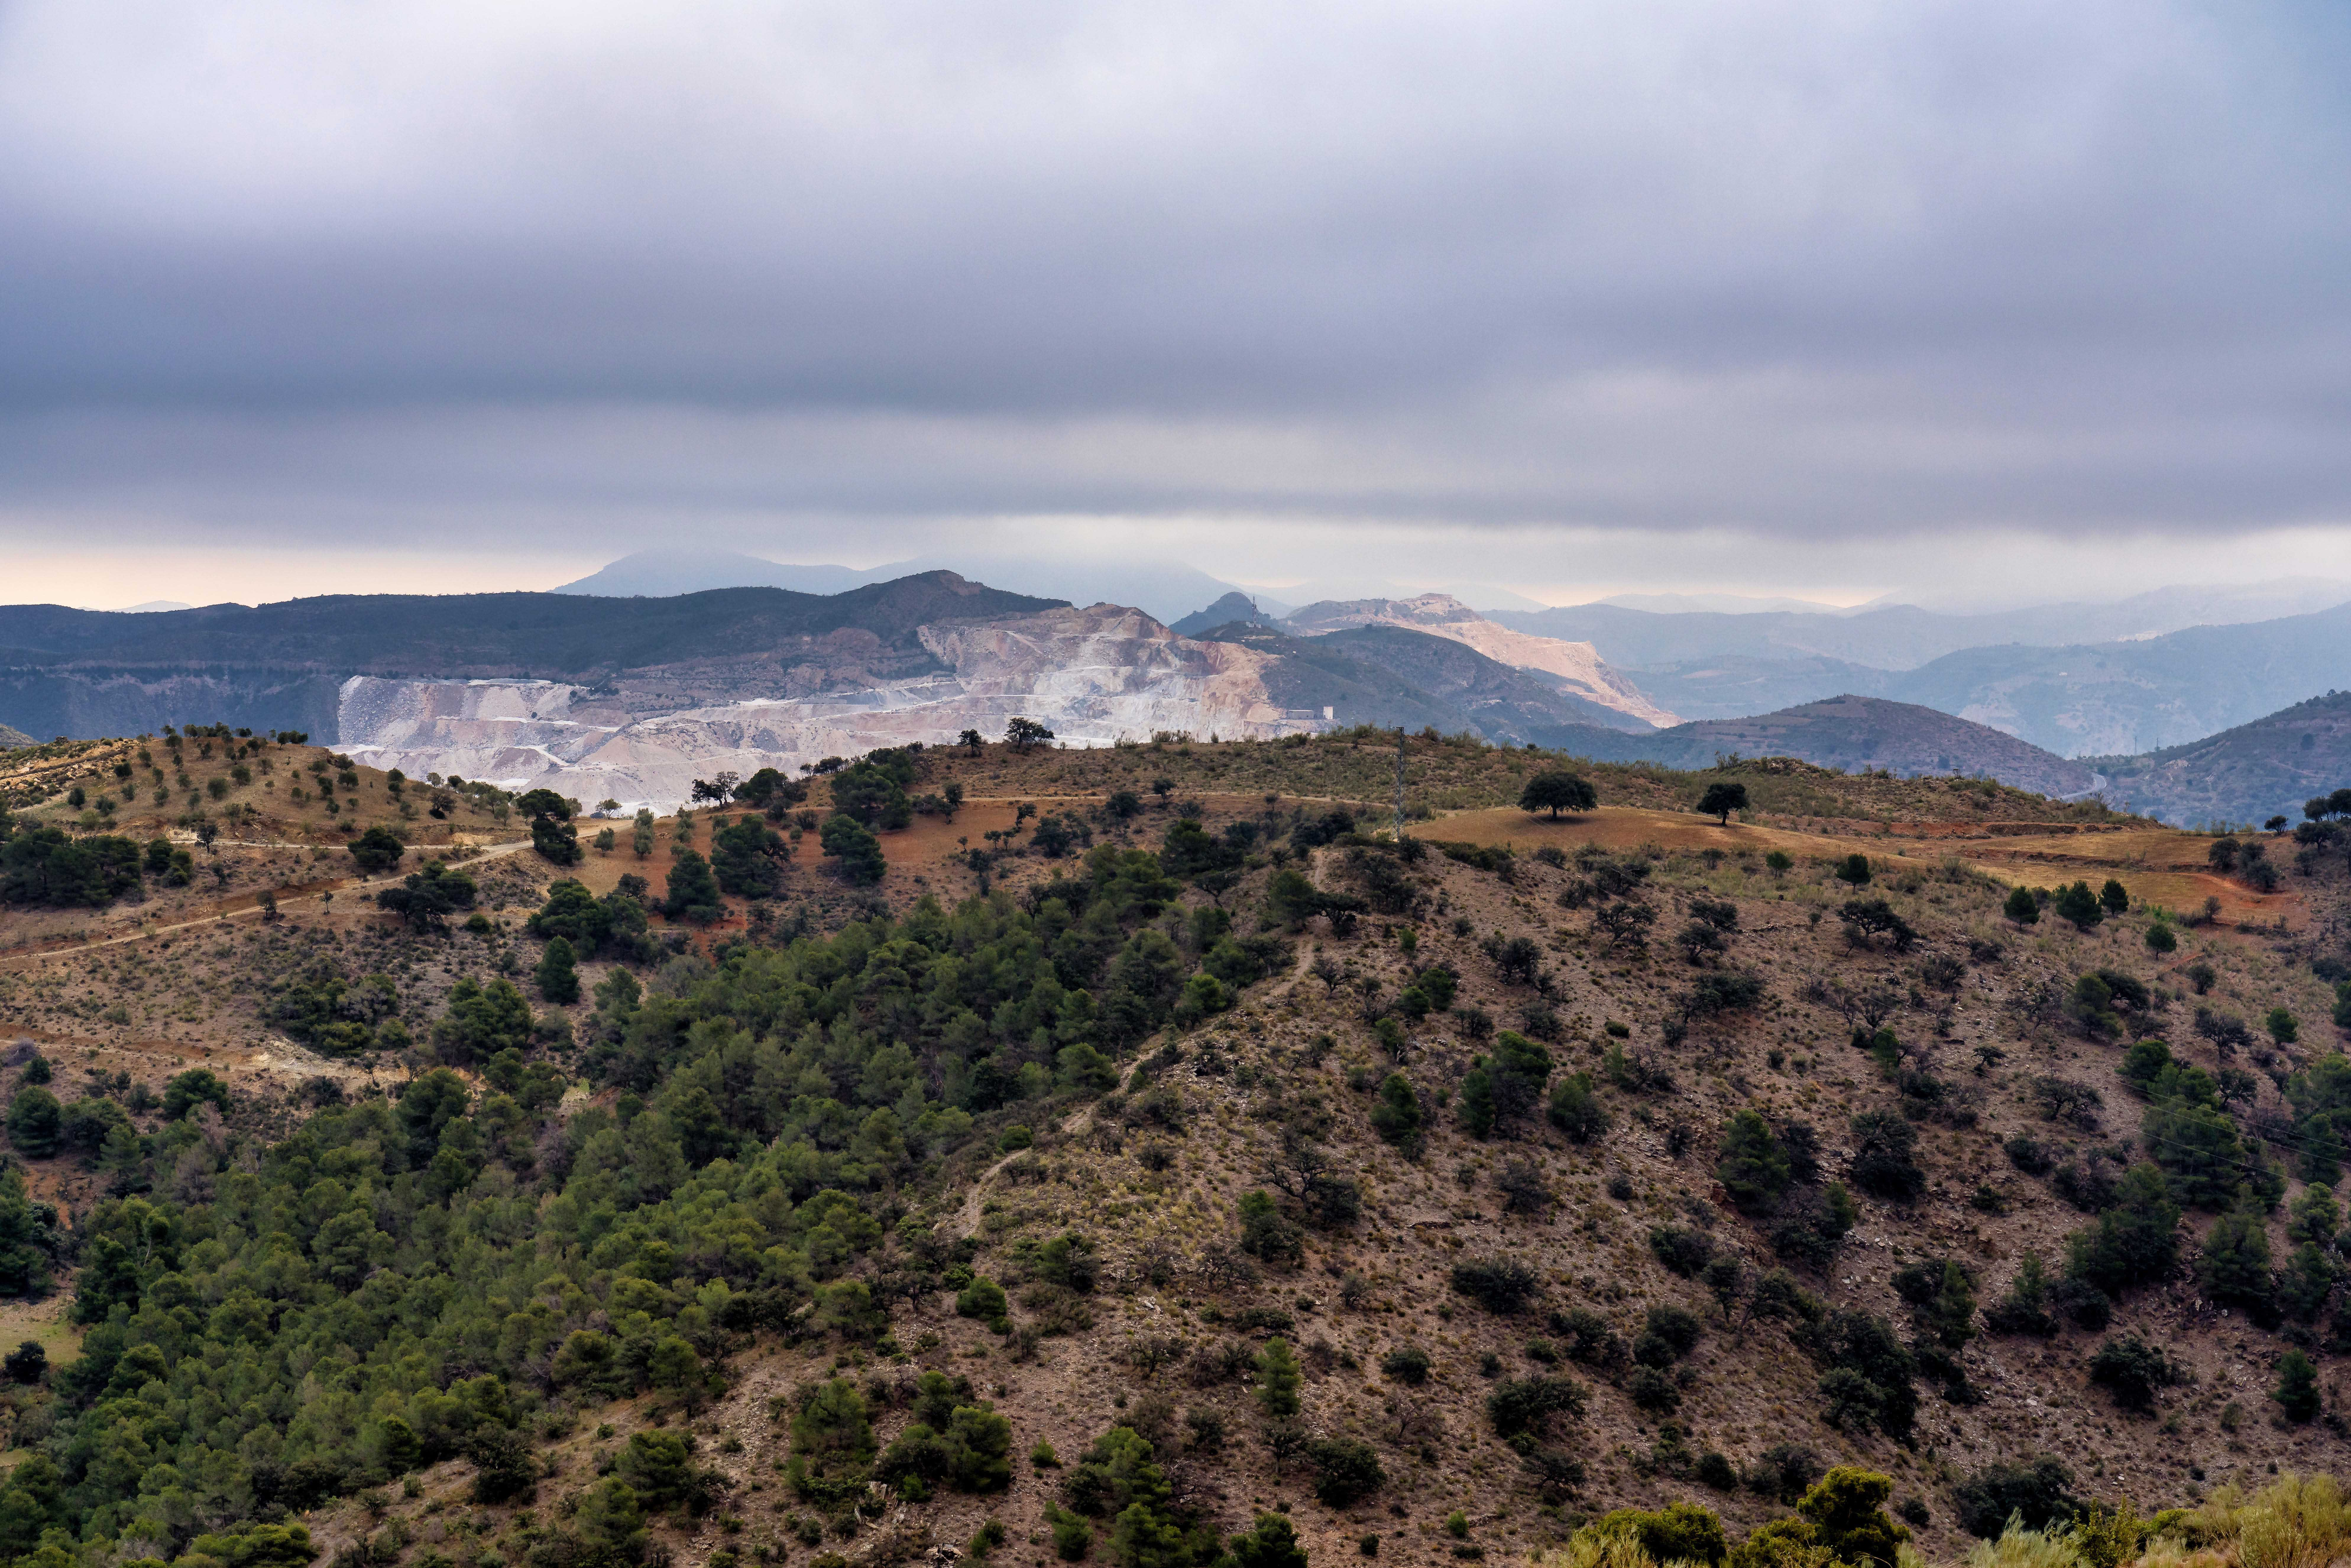 12 Real Life Game of Thrones Locations to See in Spain